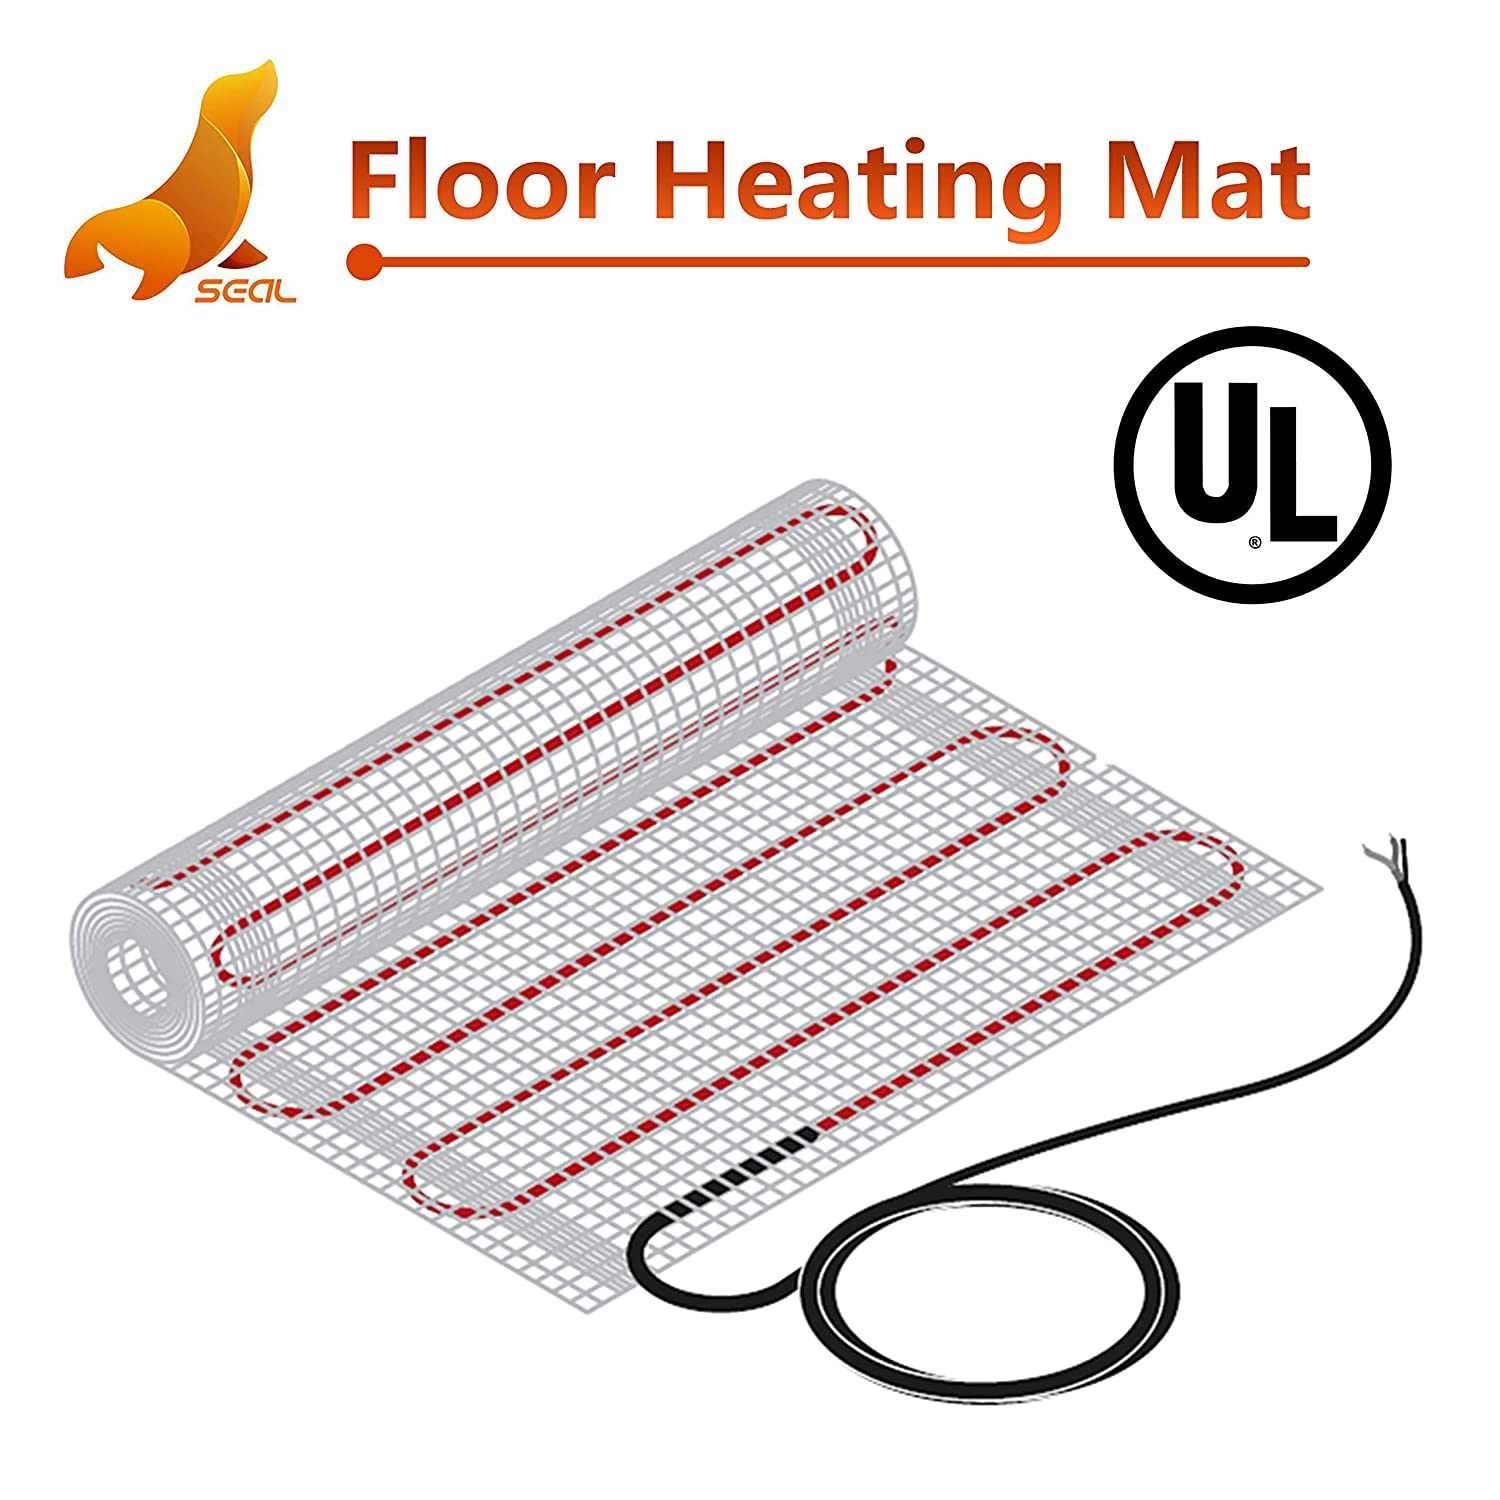 SEAL 20 sqft 120V Radiant Floor Heating Mat for Ceramic, Tile, Mortar, Easy to Install Self-adhesive Floor Heating System Kit